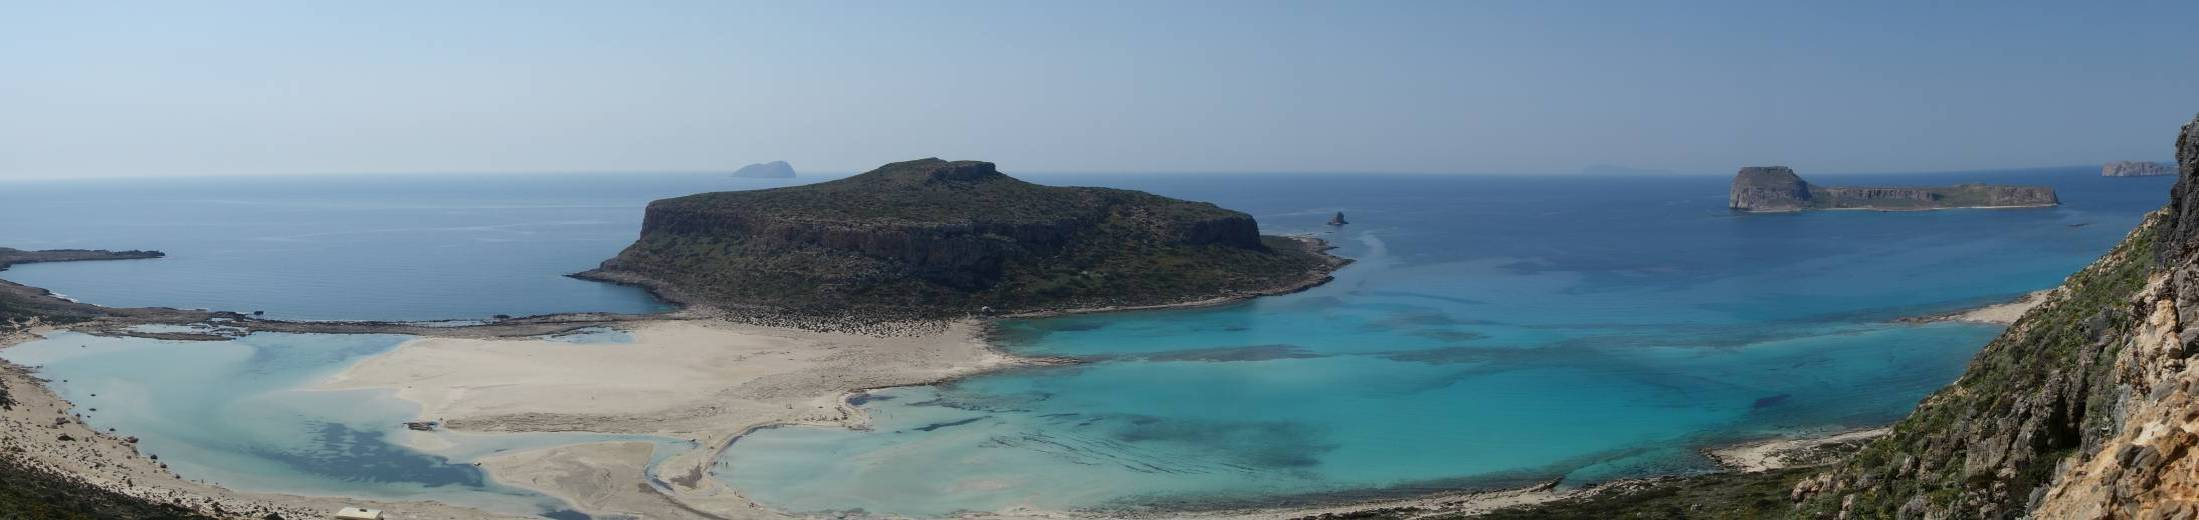 TBalos beach and lagoon